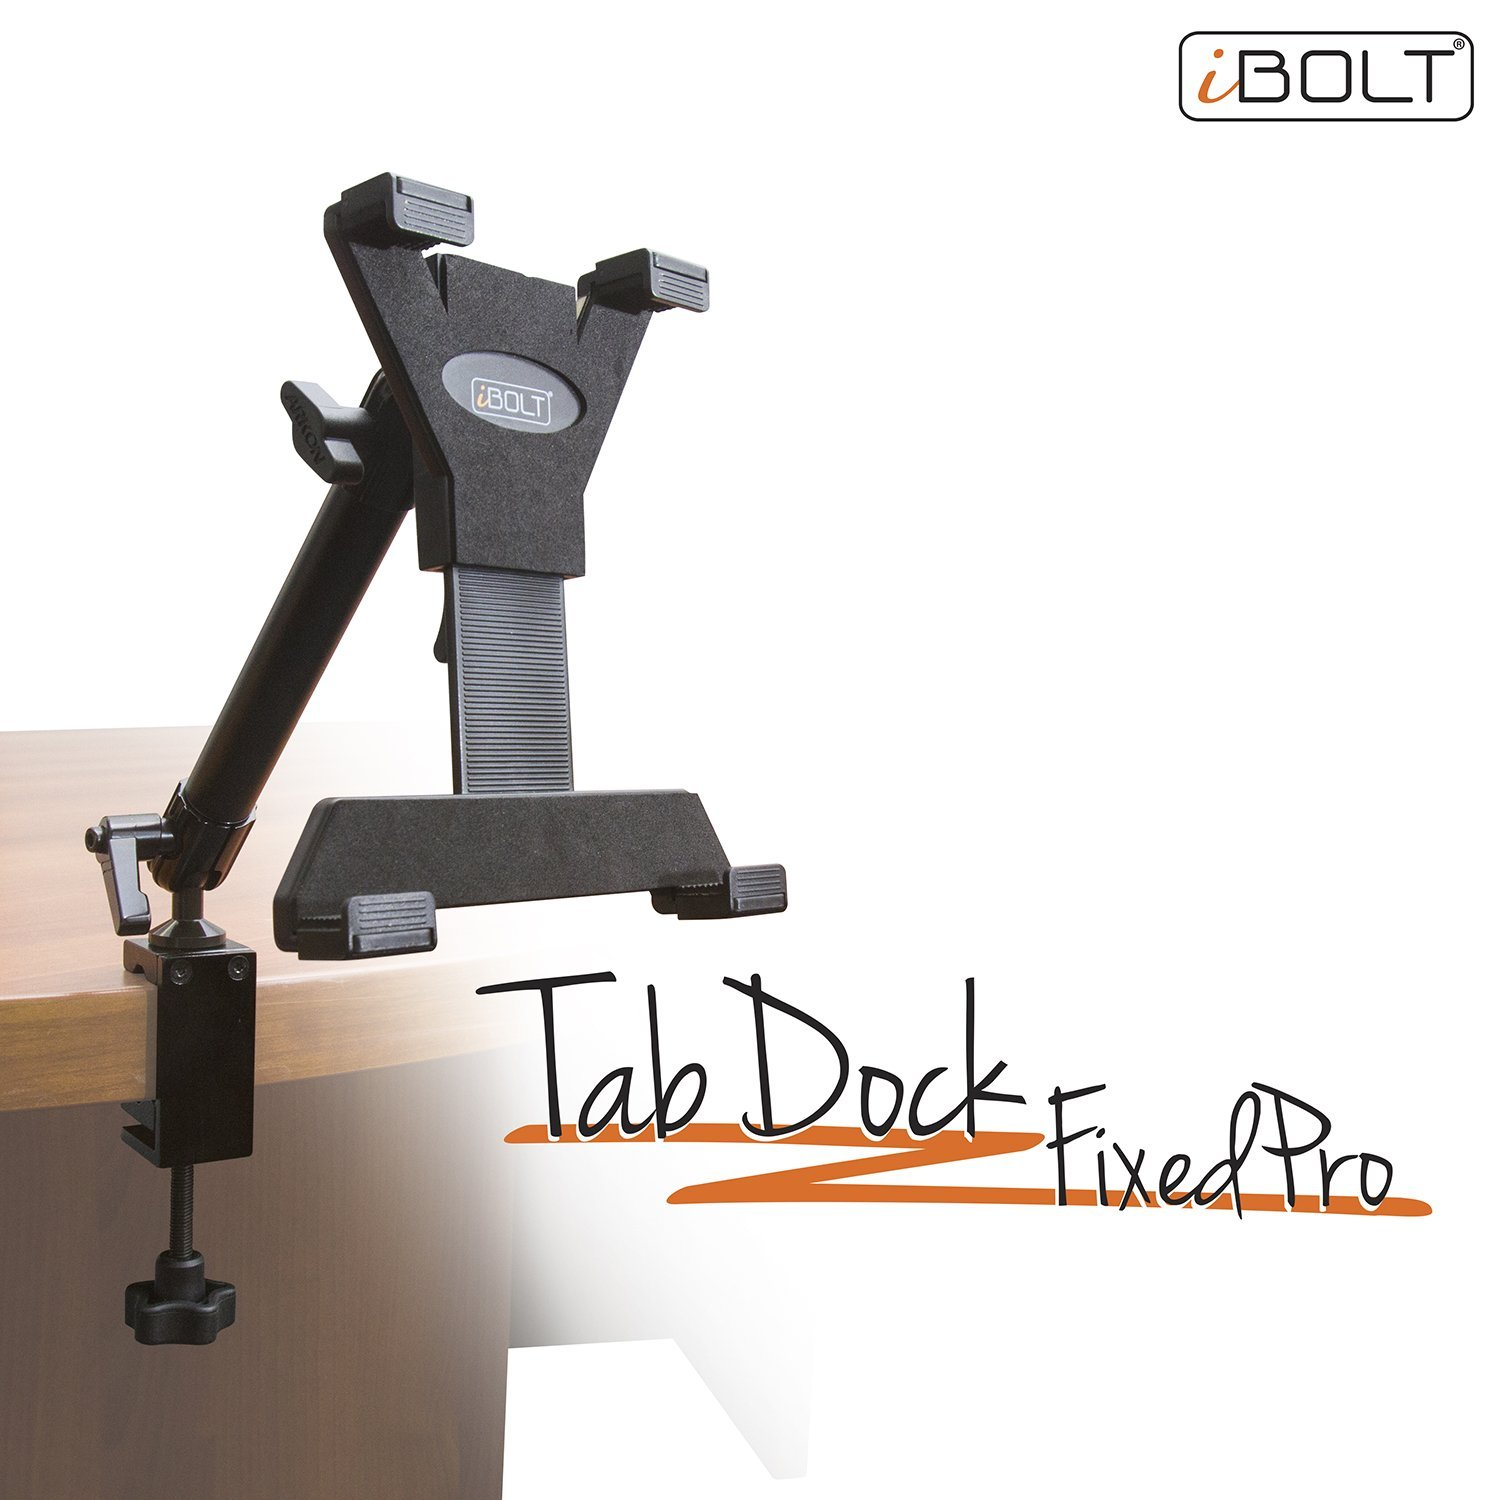 iBOLT TabDock FixedPro Clamp- Heavy Duty Metal C-Clamp mount for all 7'' - 10'' tablets ( iPad , Nexus, Samsung Tab ) For Desks, Tables, Wheelchairs, Carts, etc : Great For Homes, Schools, and Offices